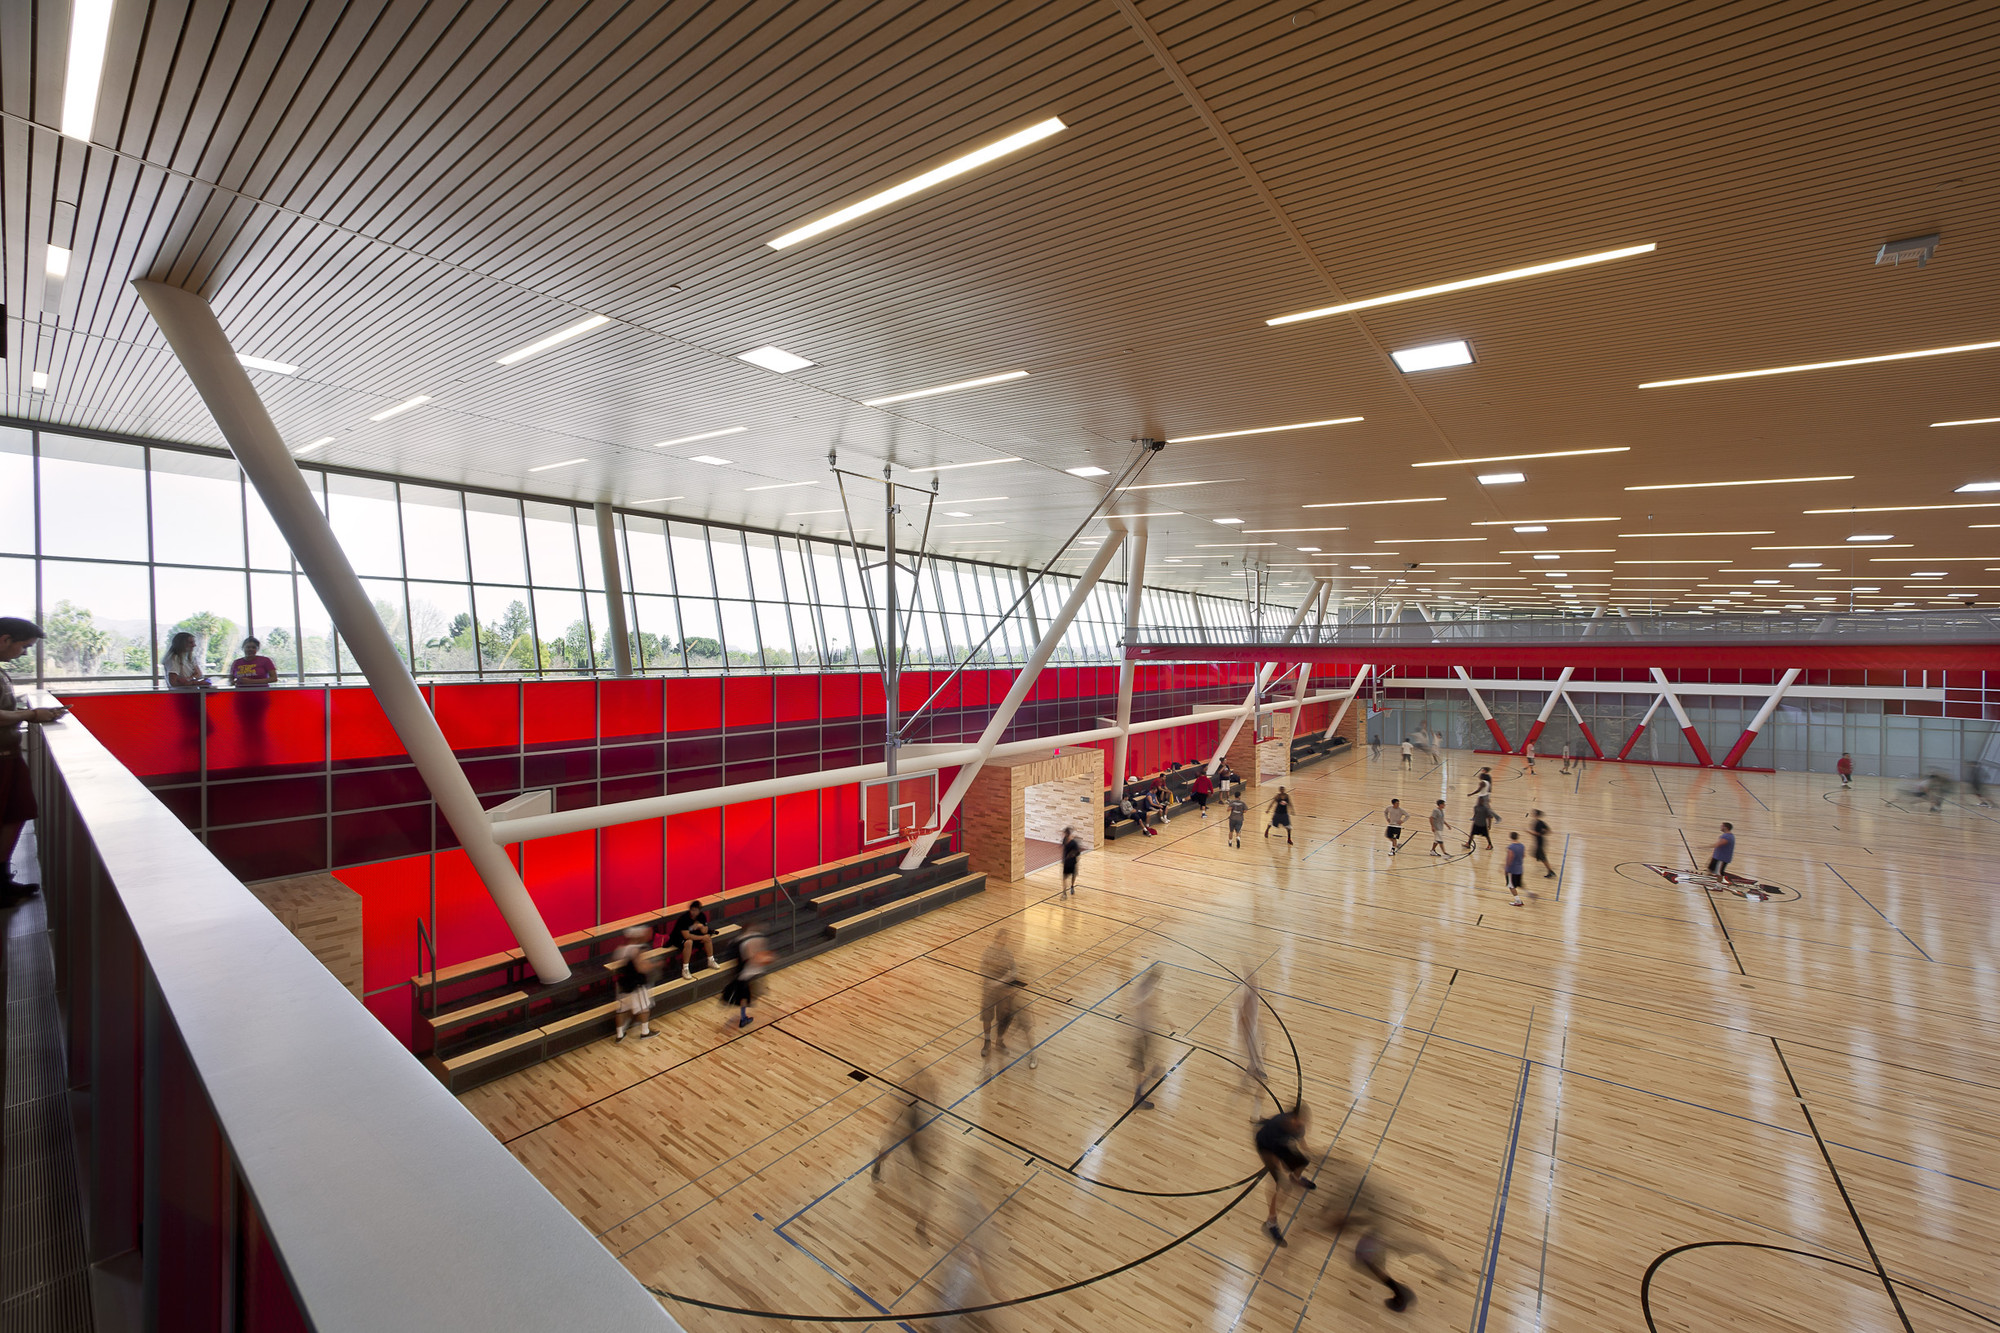 California State University, Northridge Student Recreation Center; Northridge, California / LPA, Incorporated © Costea Photography Inc.